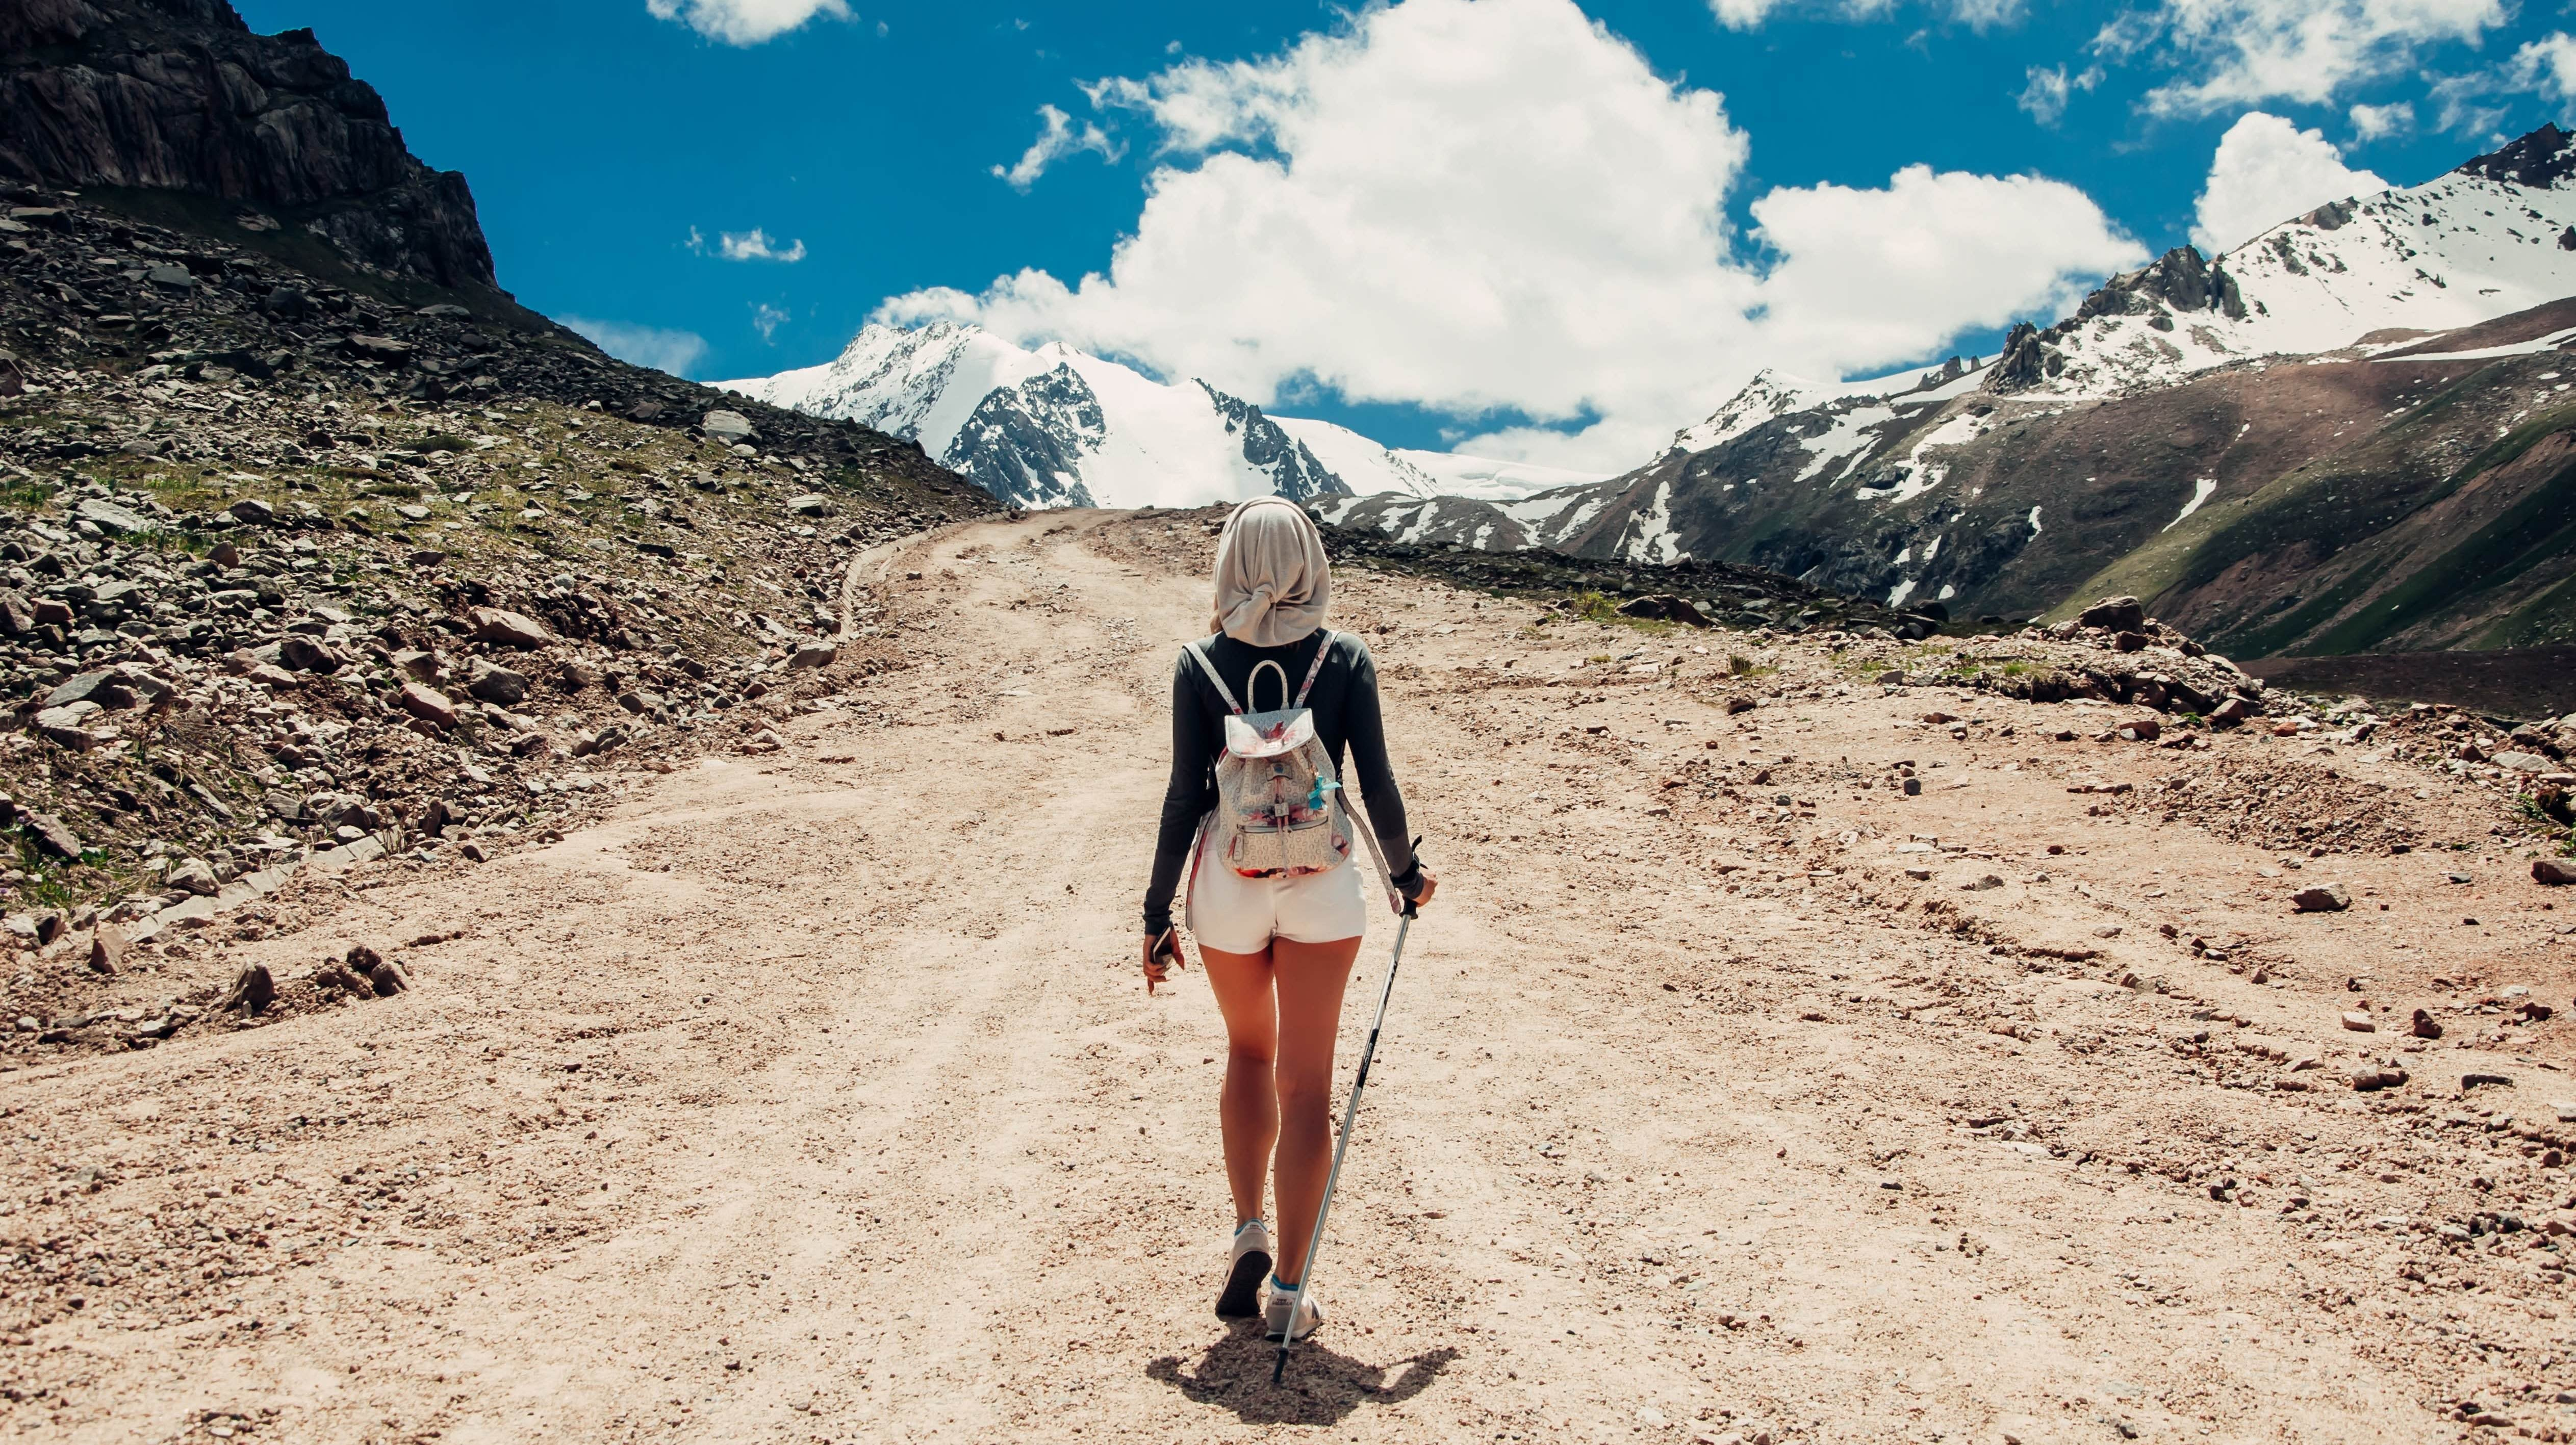 Find The Best Spots For A Hike Or Run Near You With This App